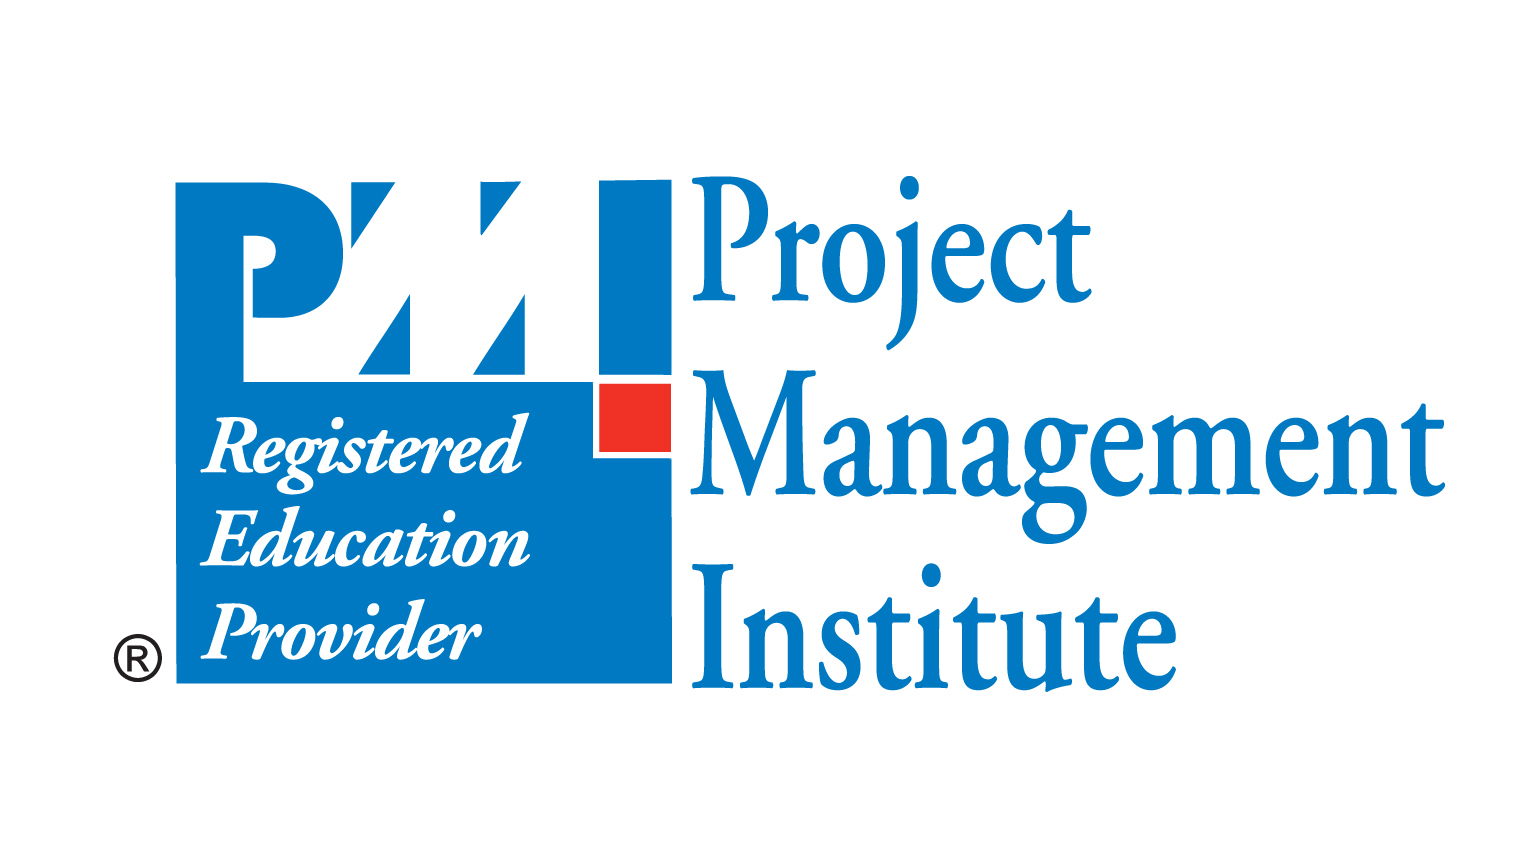 Project management certificate university of san diego registered education provider rep project management certificate program pmi rep university of san diego xflitez Choice Image